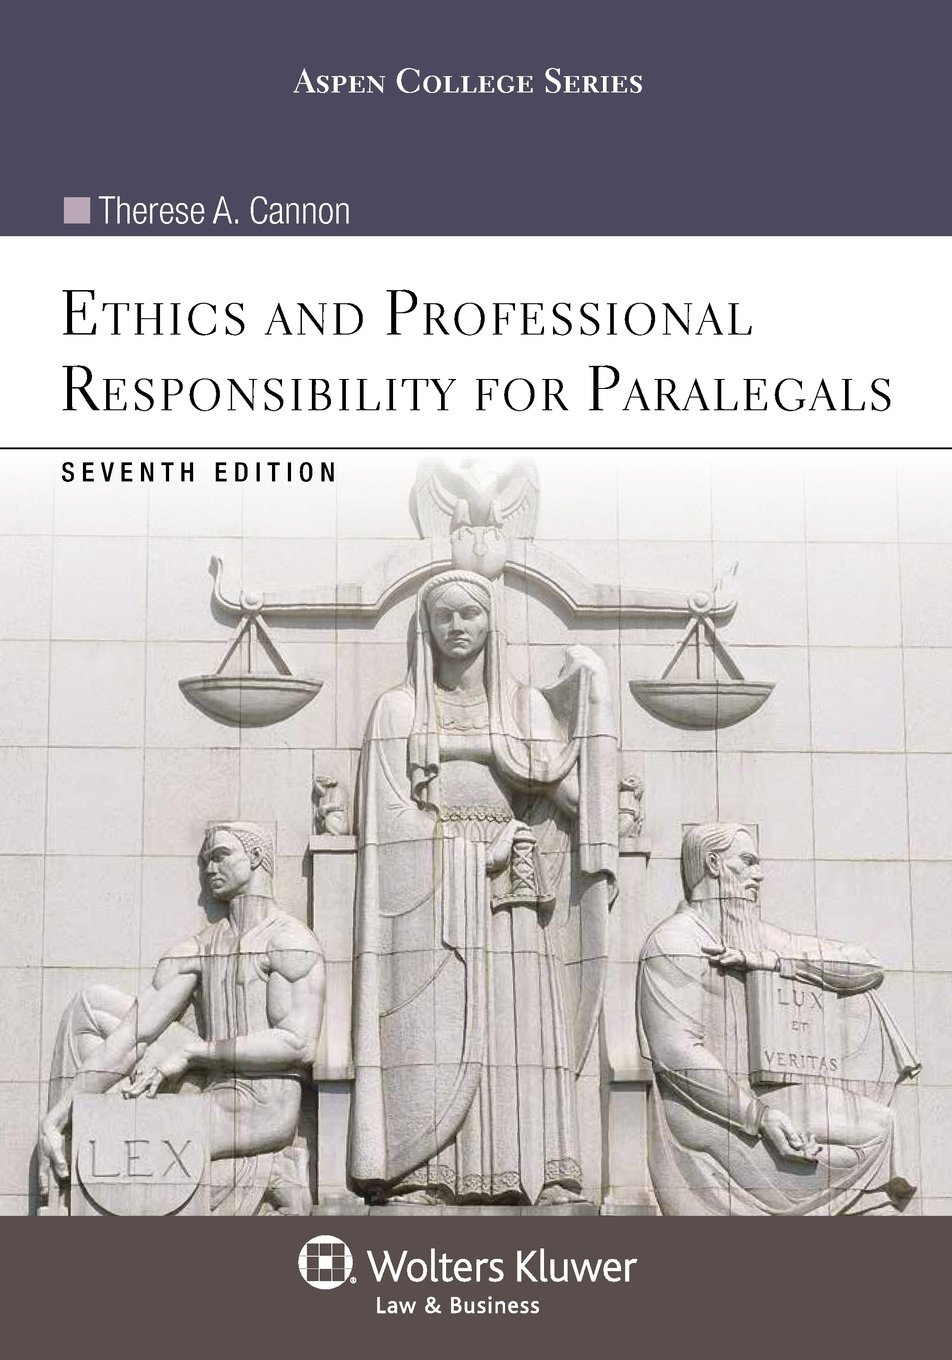 Ethics And Professional Responsibility For Paralegals, Seventh Edition (Aspen College)